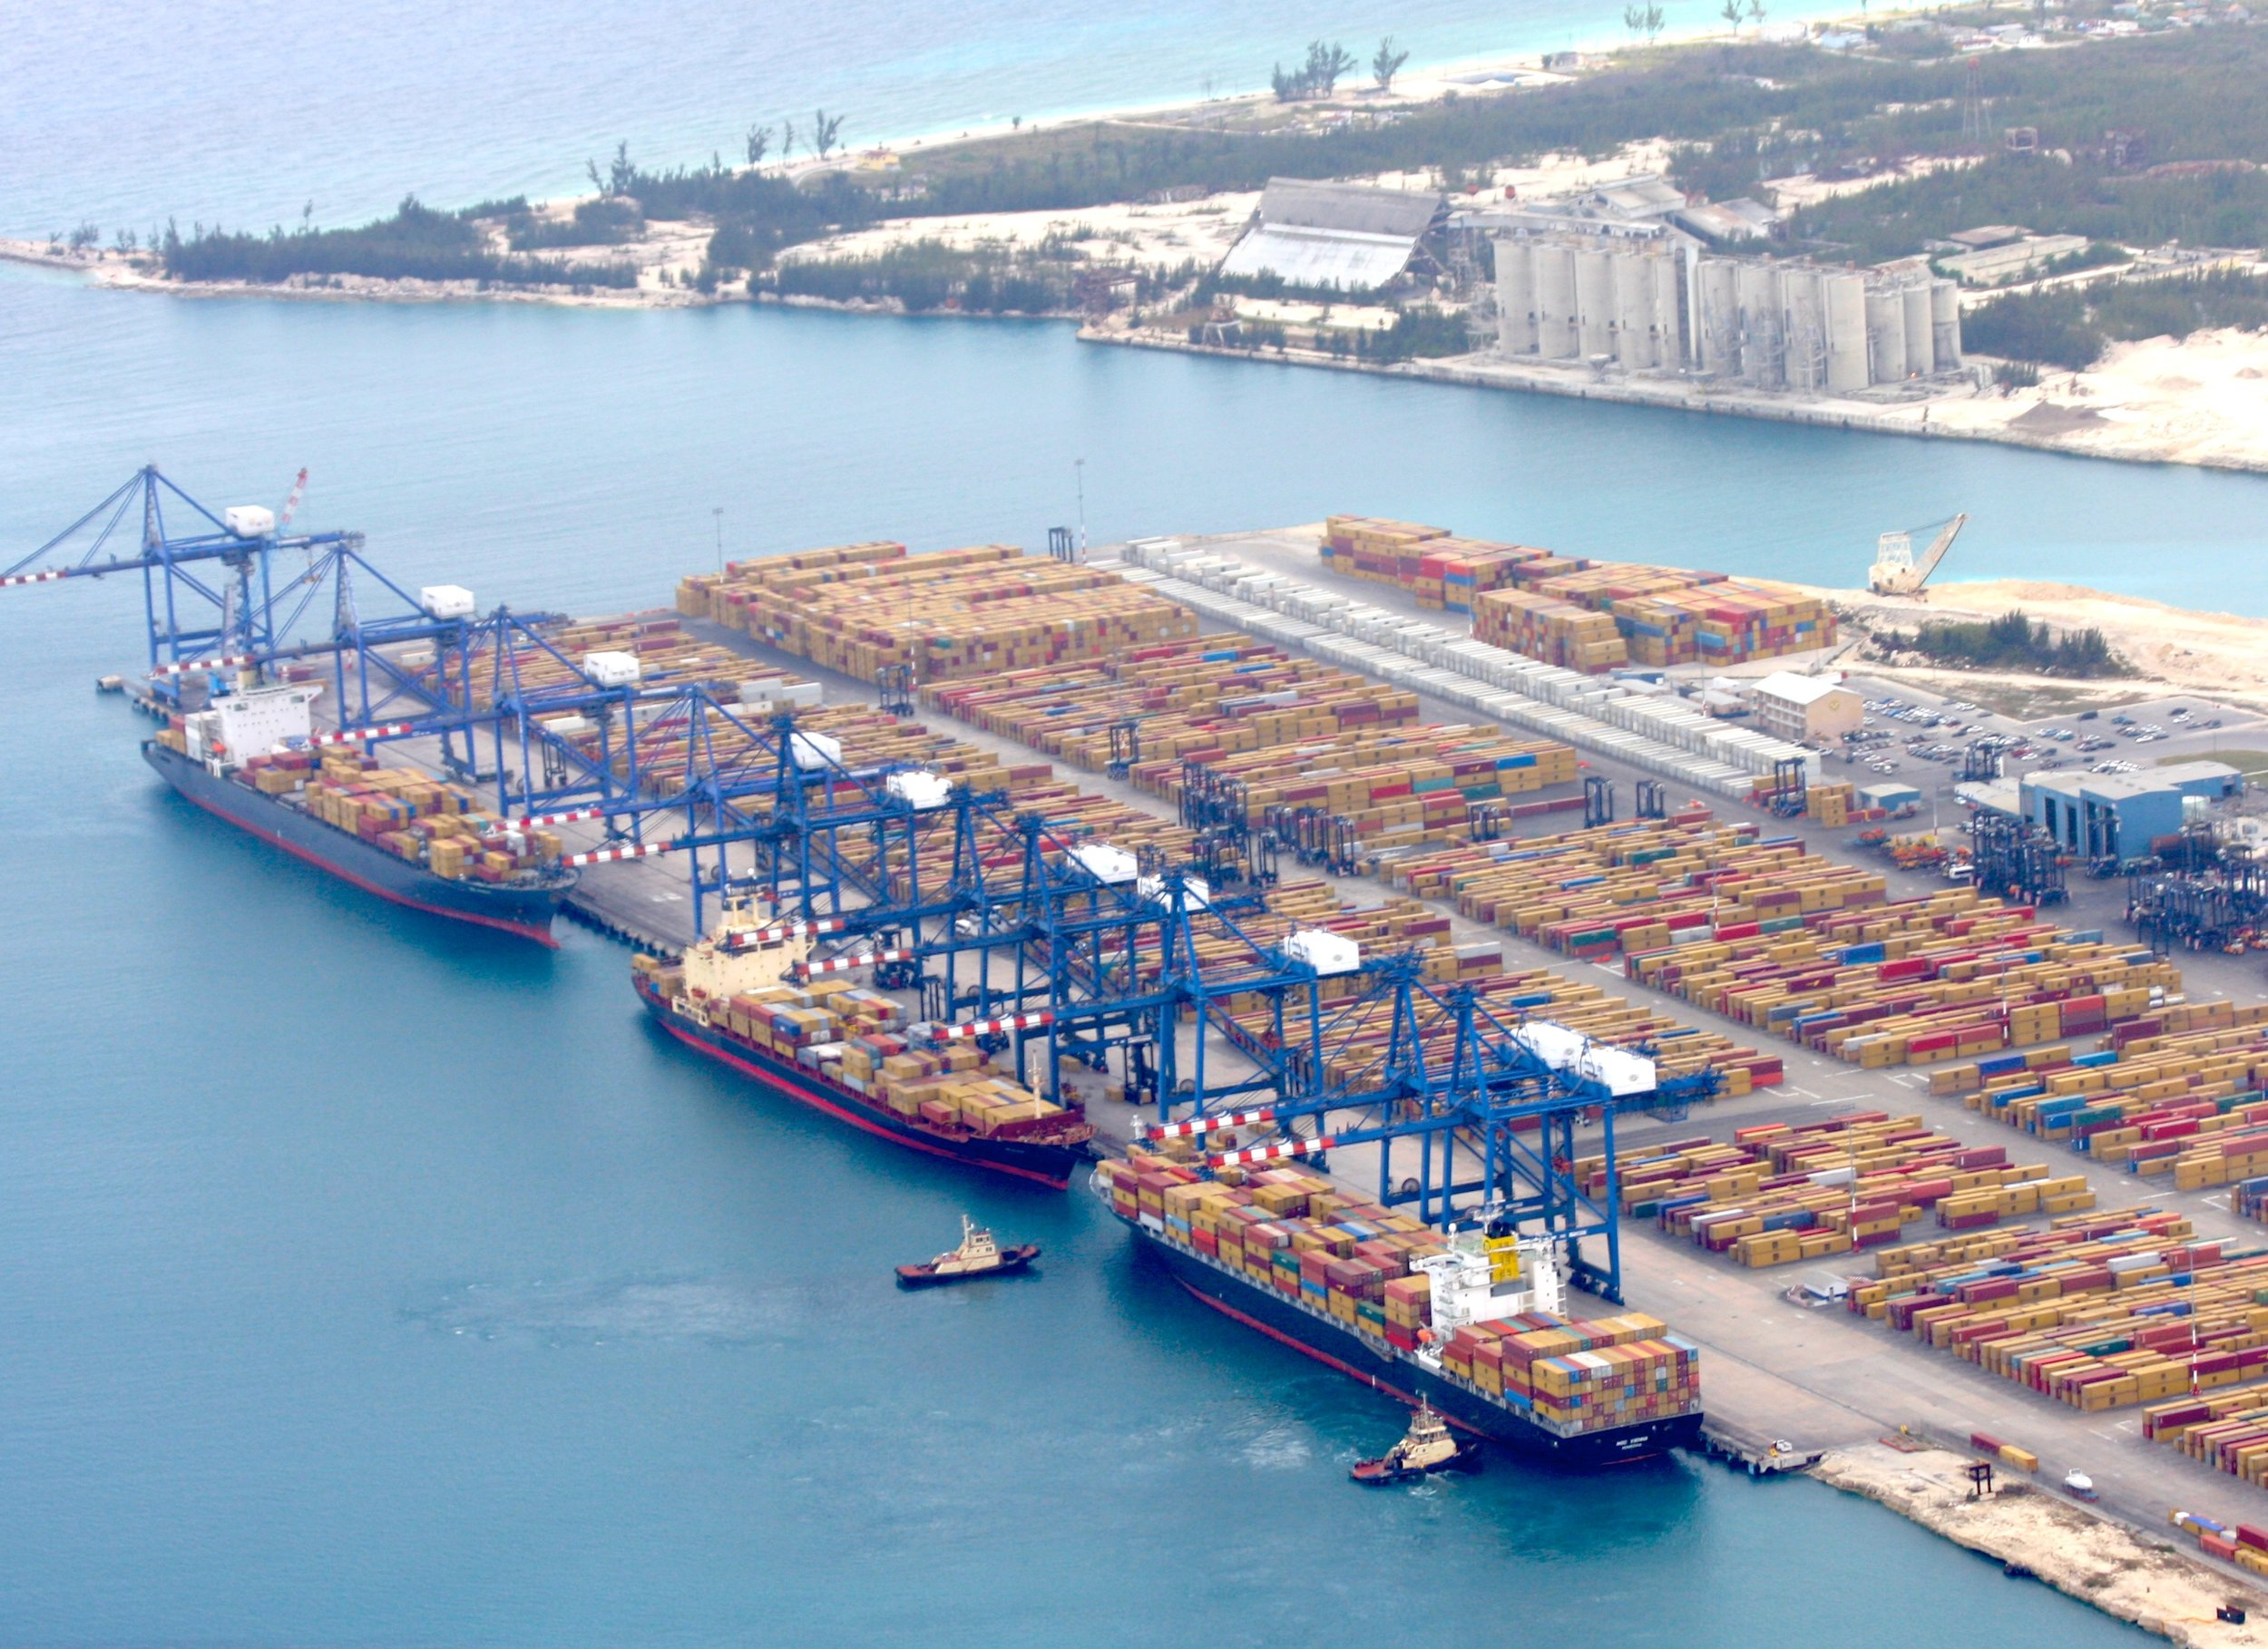 ContainerPort-IMG_5889B.jpg